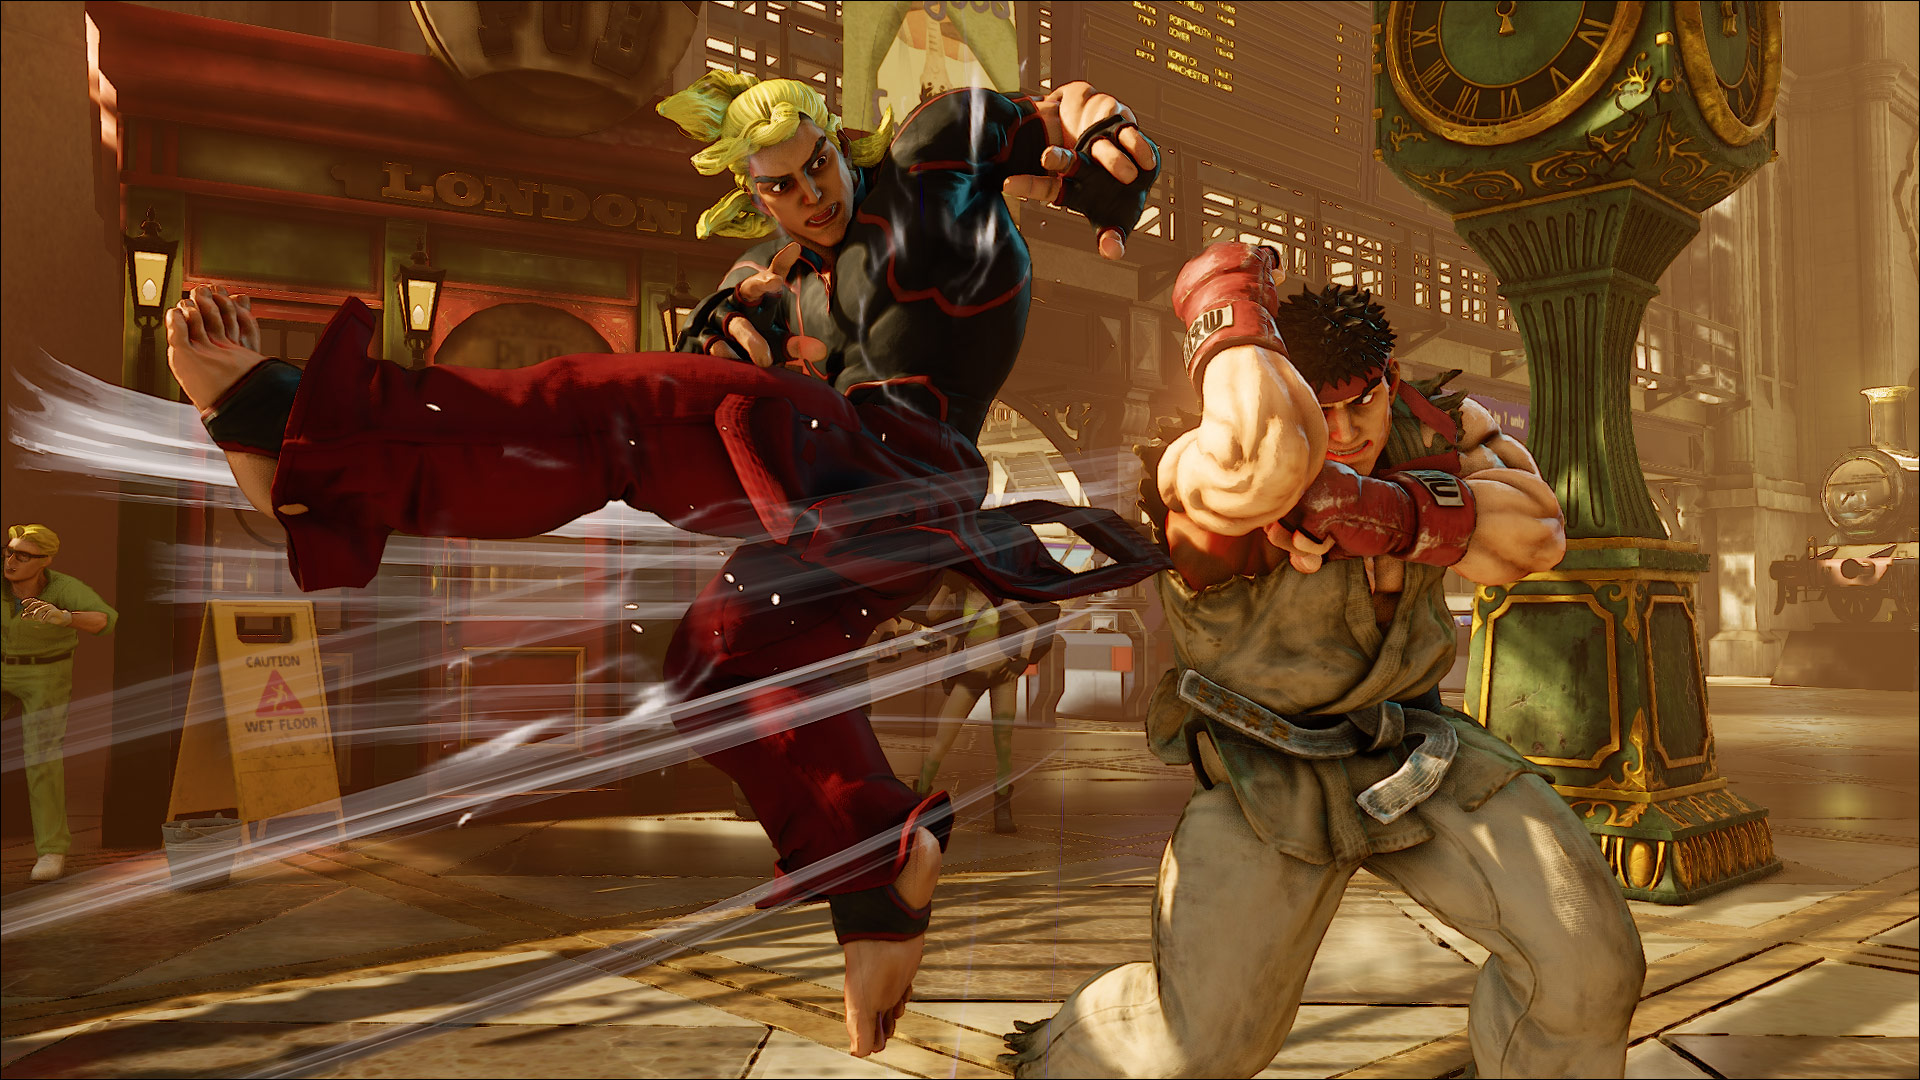 Ken Street Fighter 5 SDCC 2015 reveal 5 out of 13 image gallery